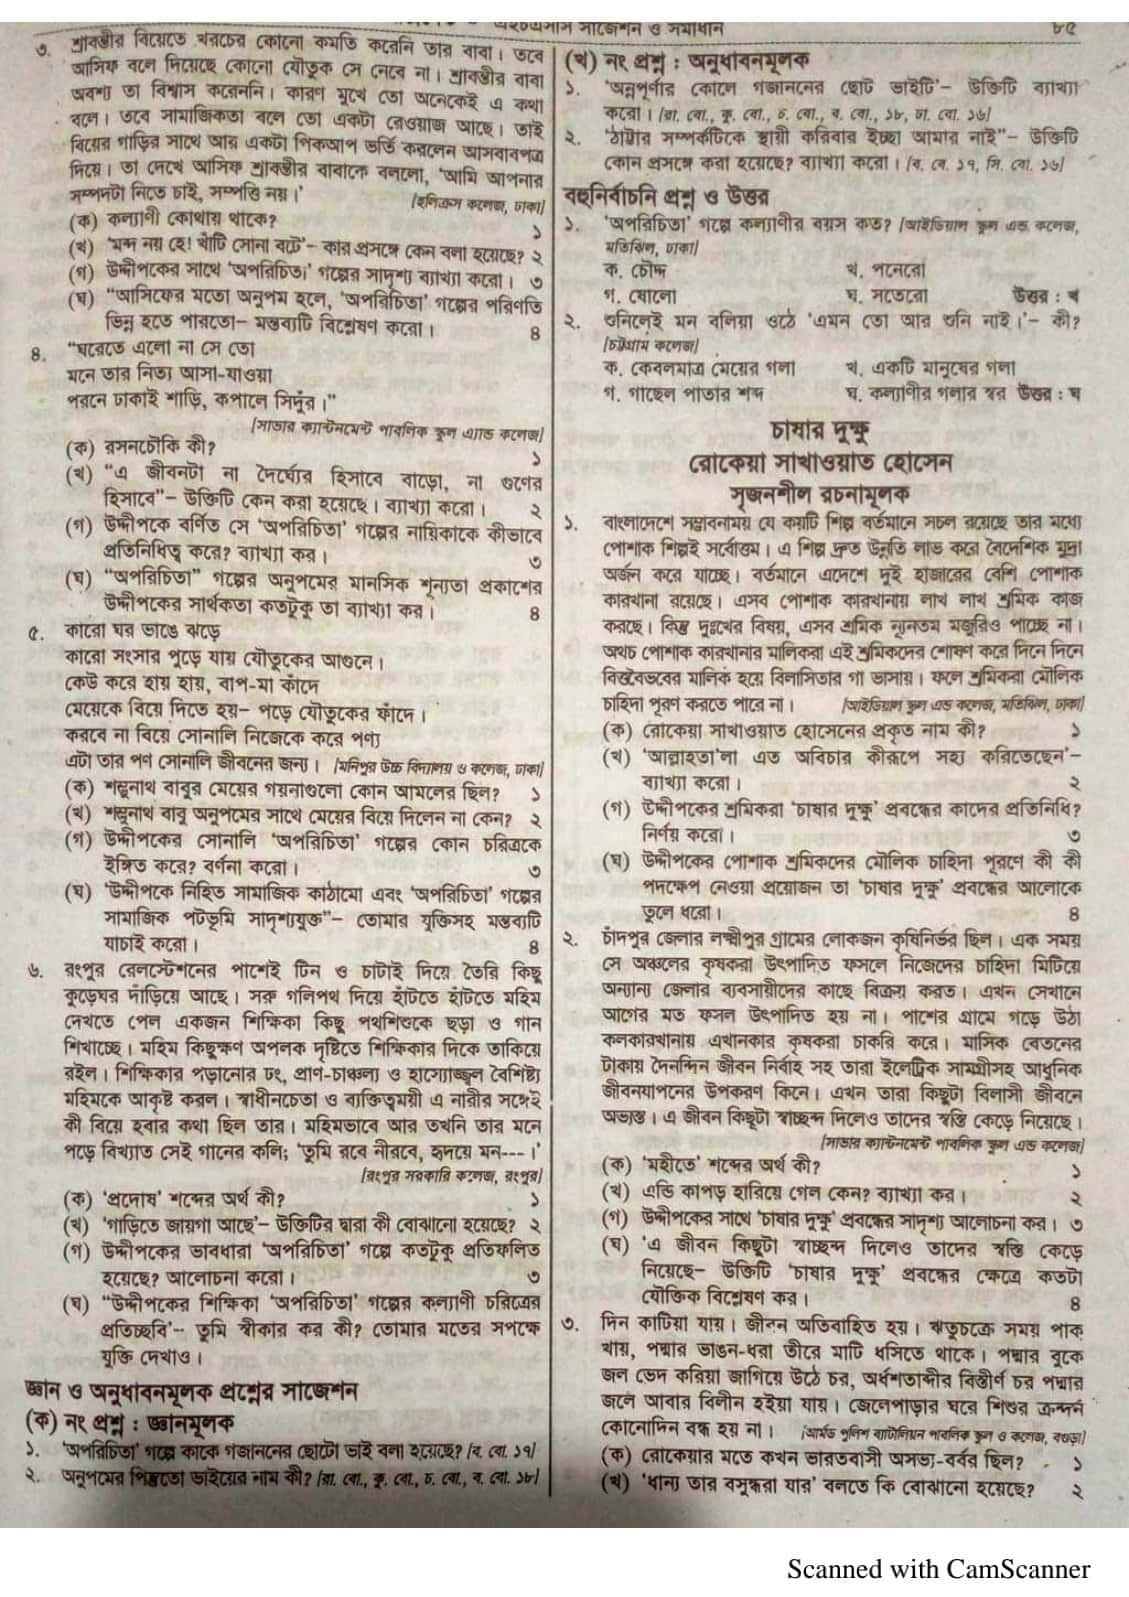 Hsc Bangla 1st Paper Suggetion 2020 |Hsc 2020 Bangla 1st Paper Suggetion